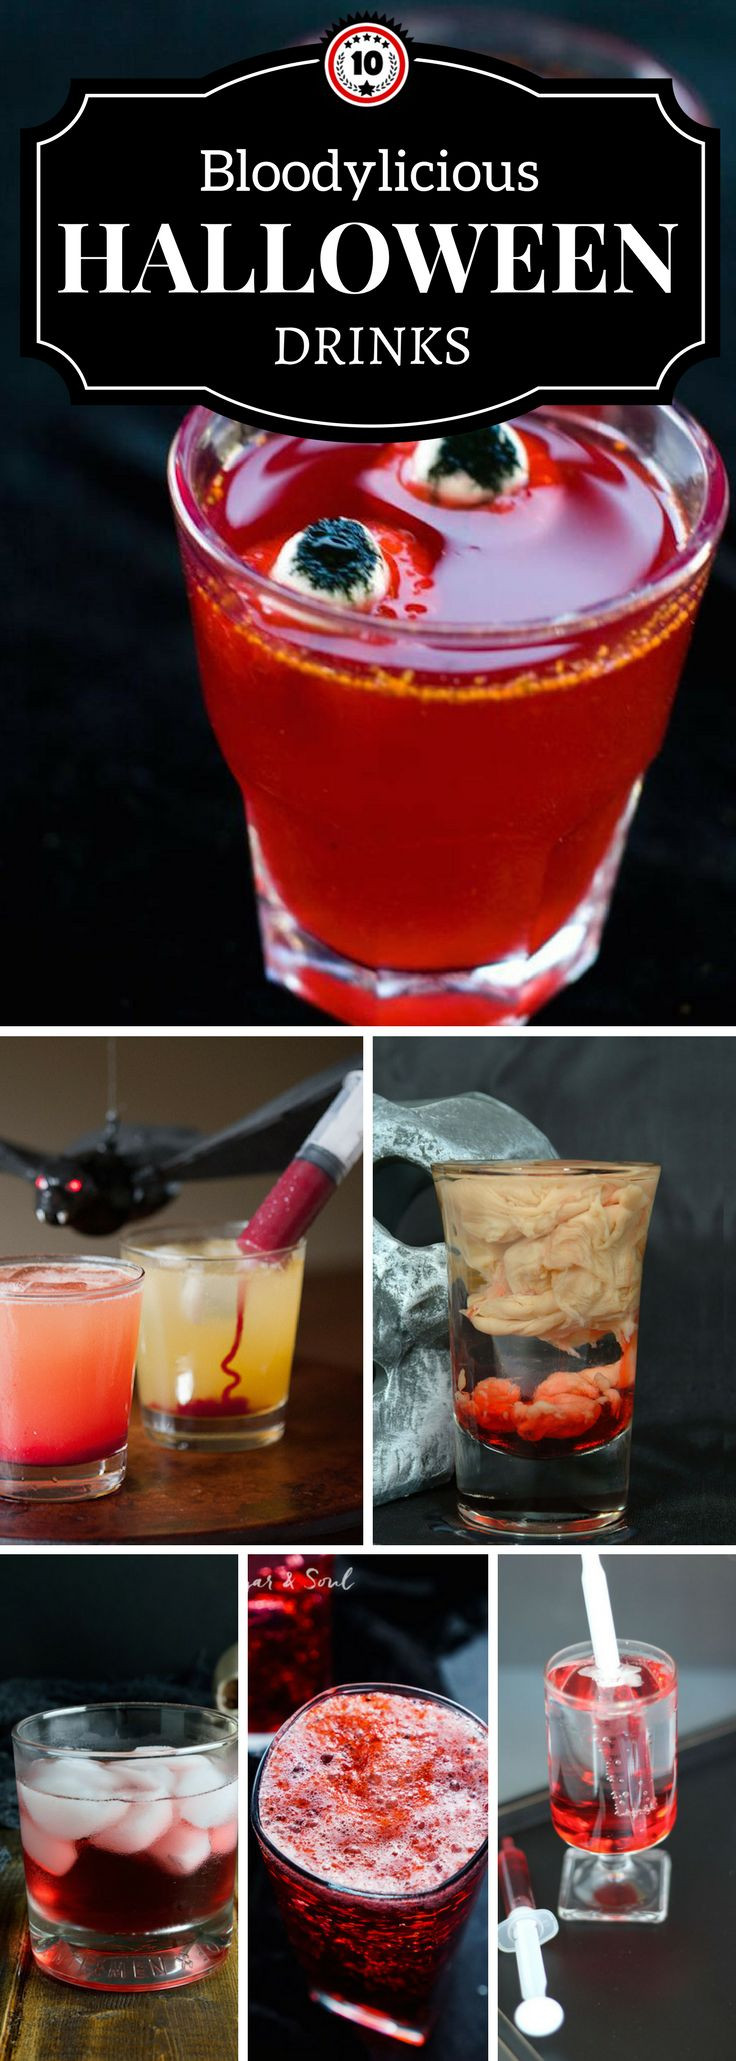 Alcoholic Halloween Drinks  Best 25 Halloween drinks ideas on Pinterest